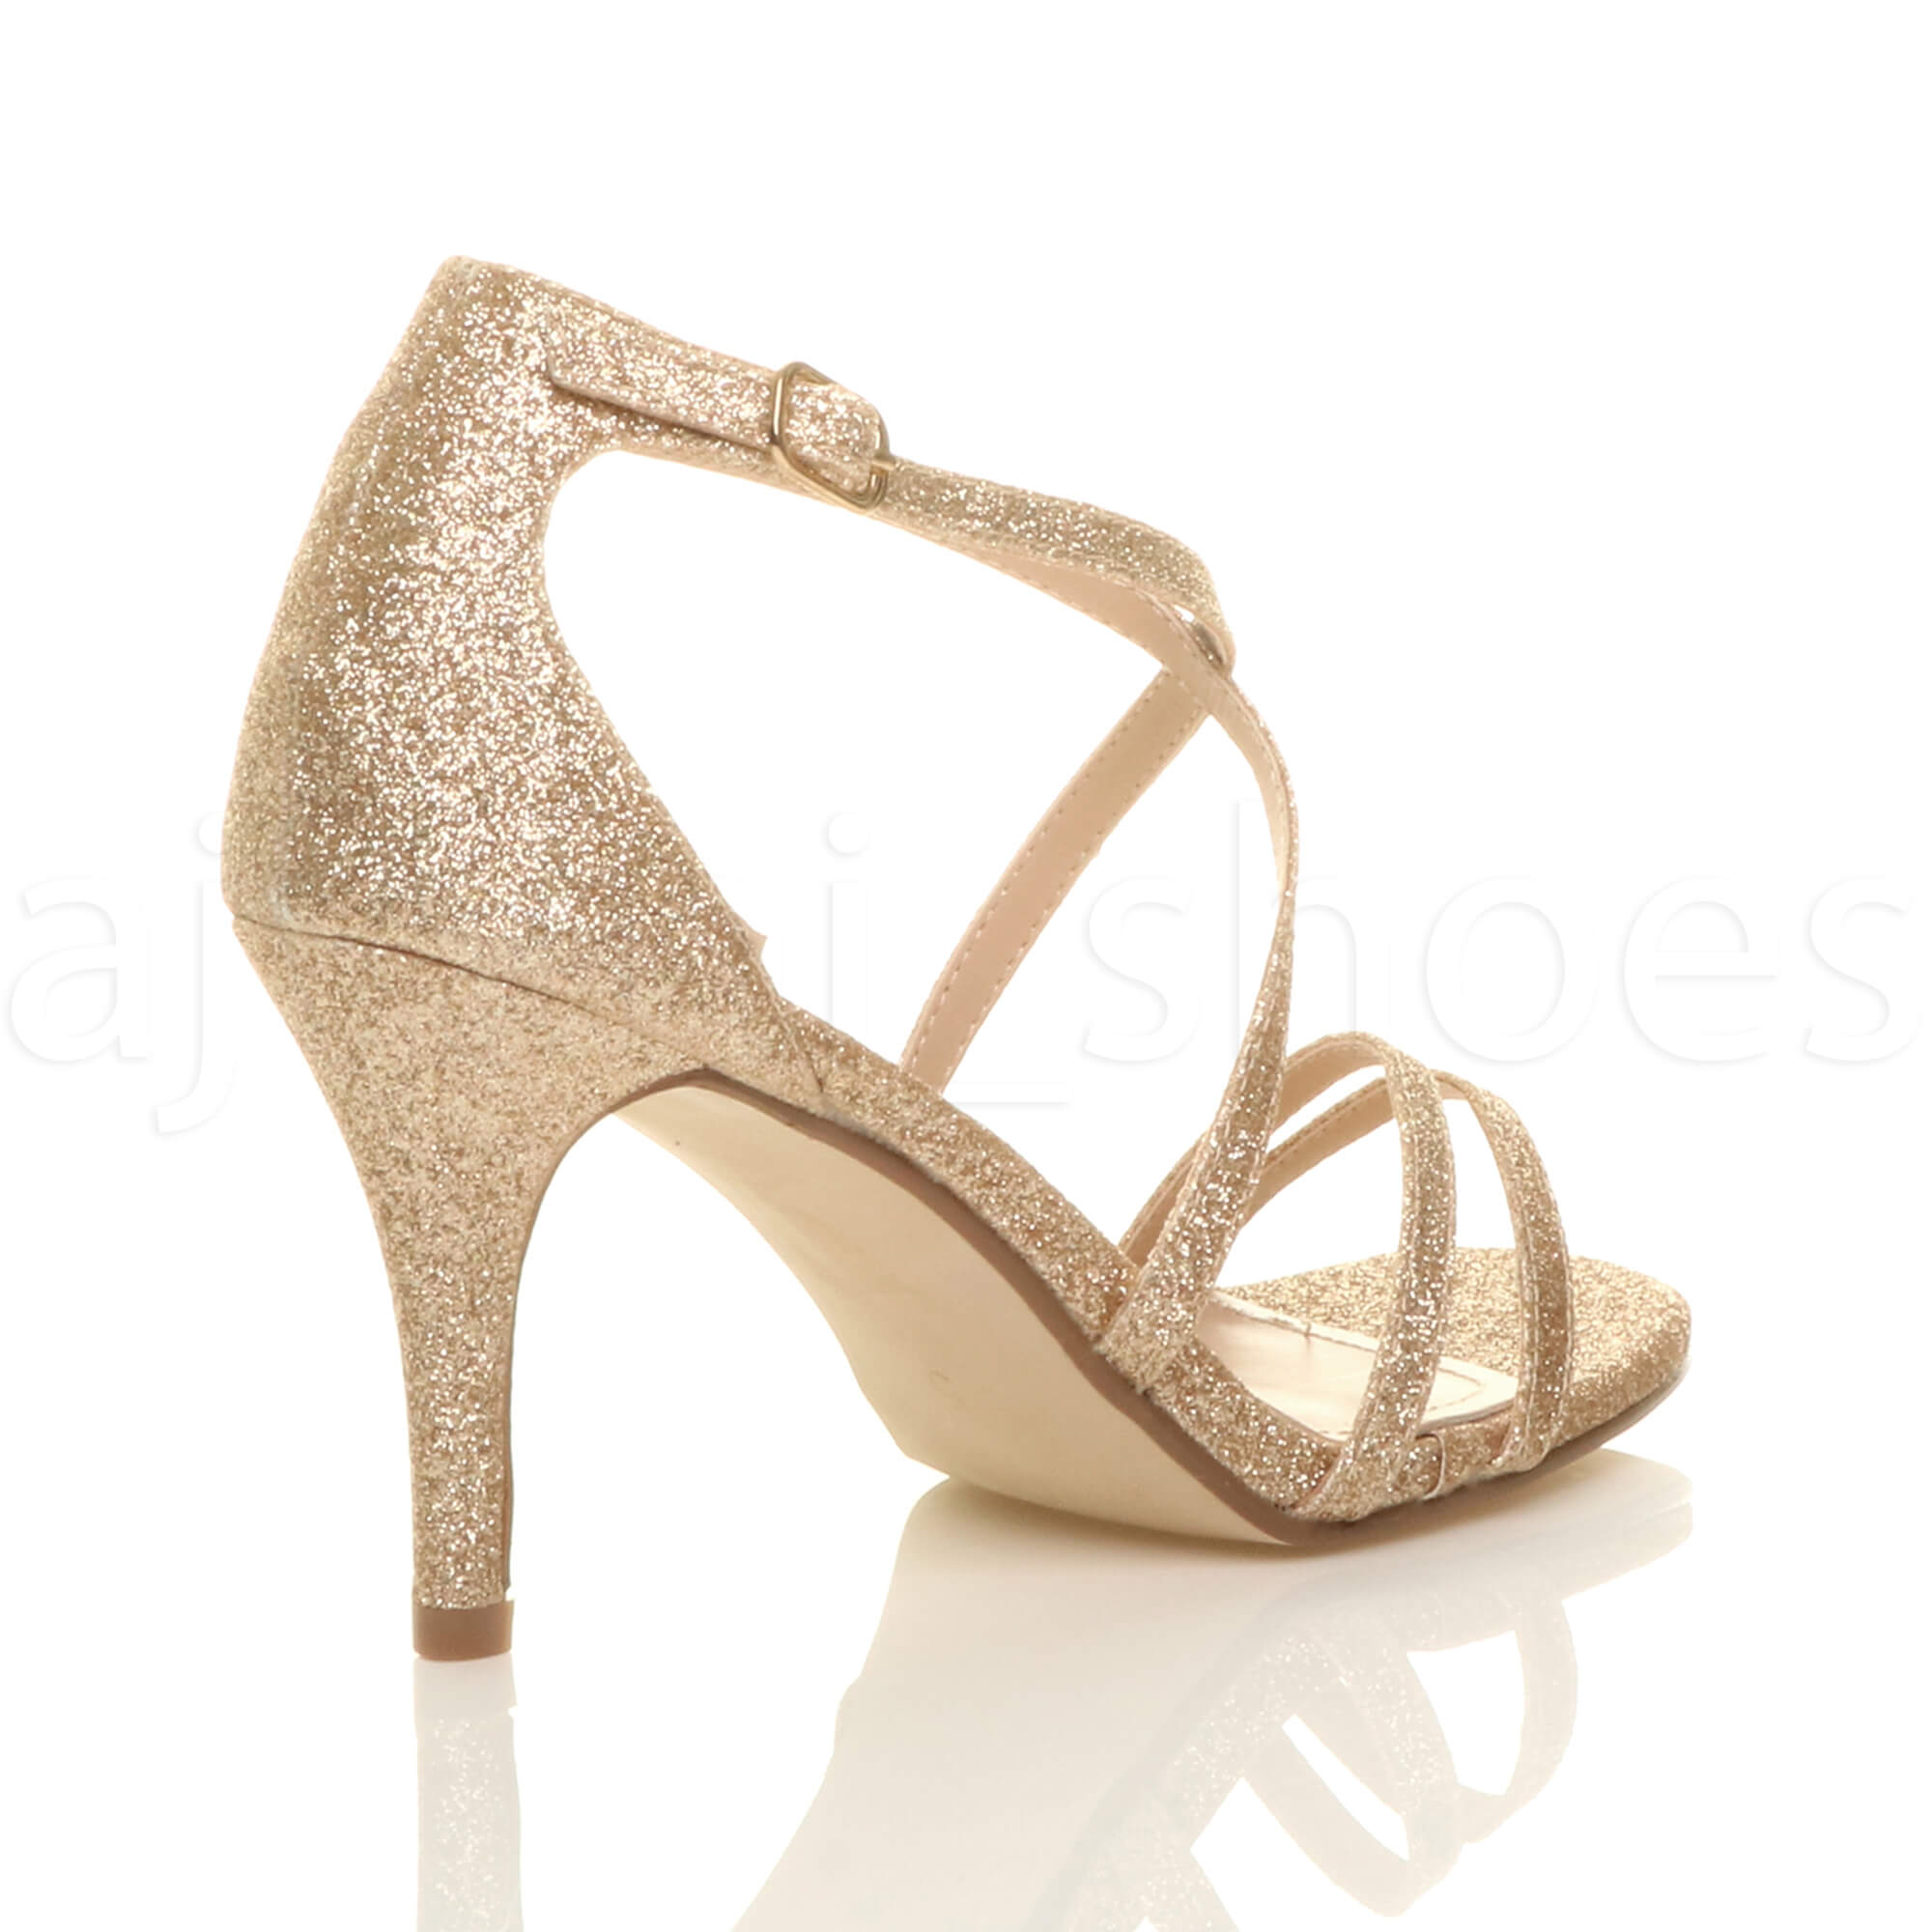 WOMENS-LADIES-MID-HIGH-HEEL-STRAPPY-CROSSOVER-WEDDING-PROM-SANDALS-SHOES-SIZE thumbnail 54